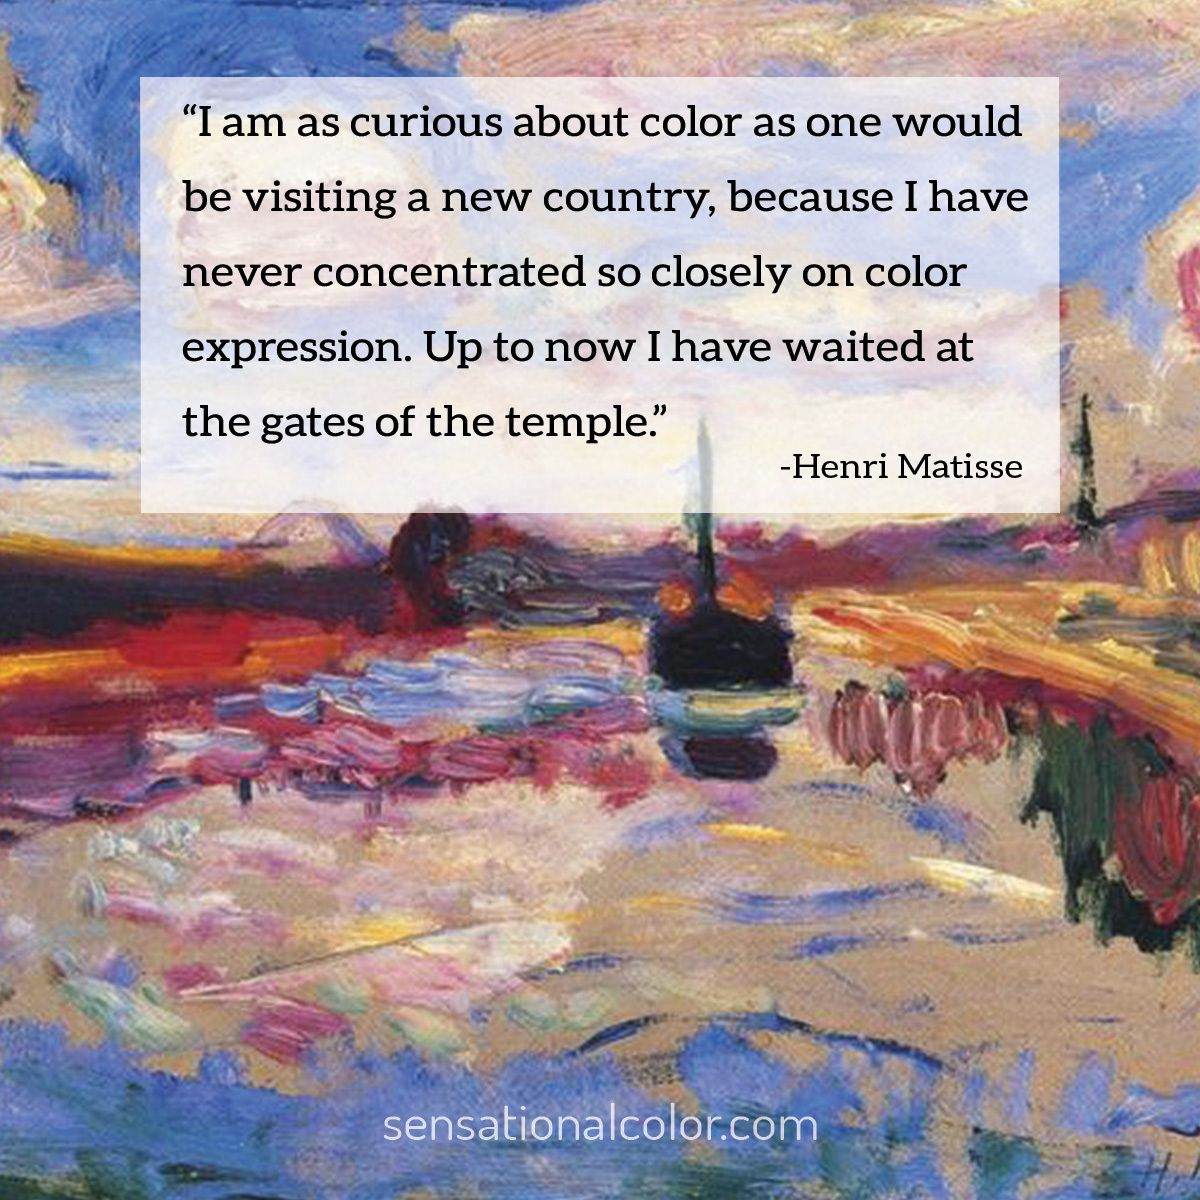 """I am as curious about color as one would be visiting a new country, because I have never concentrated so closely on color expression. Up to now I have waited at the gates of the temple."" - Henri Matisse"